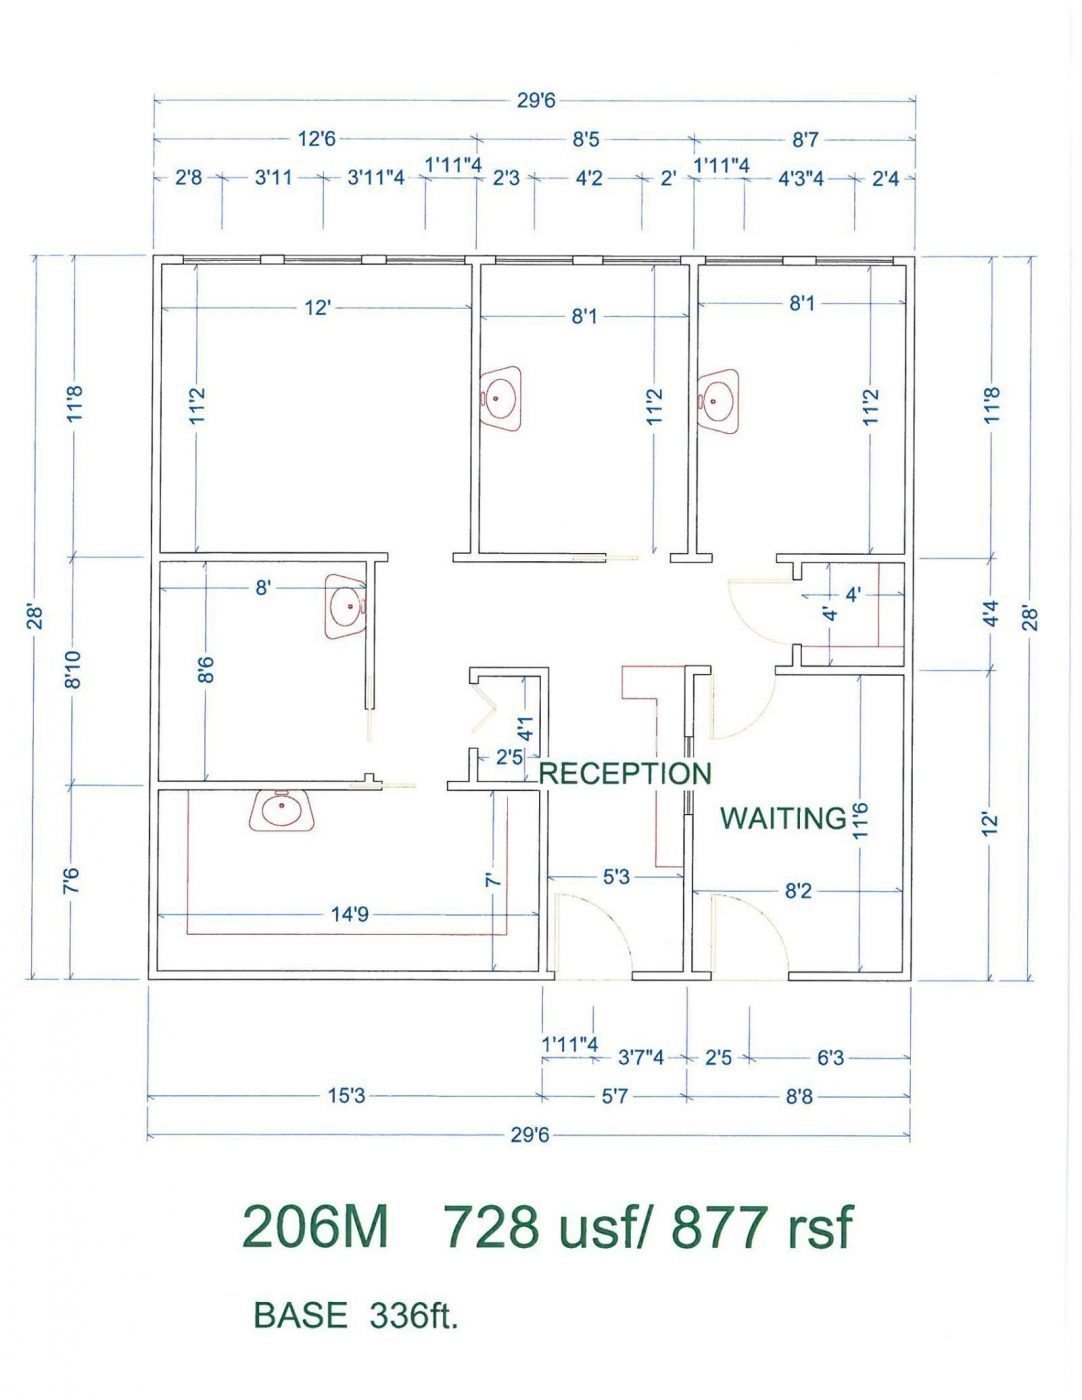 Floor Plan for unit 206M at 20905 Greenfield Rd - 2nd Floor Southfield, MI 48075